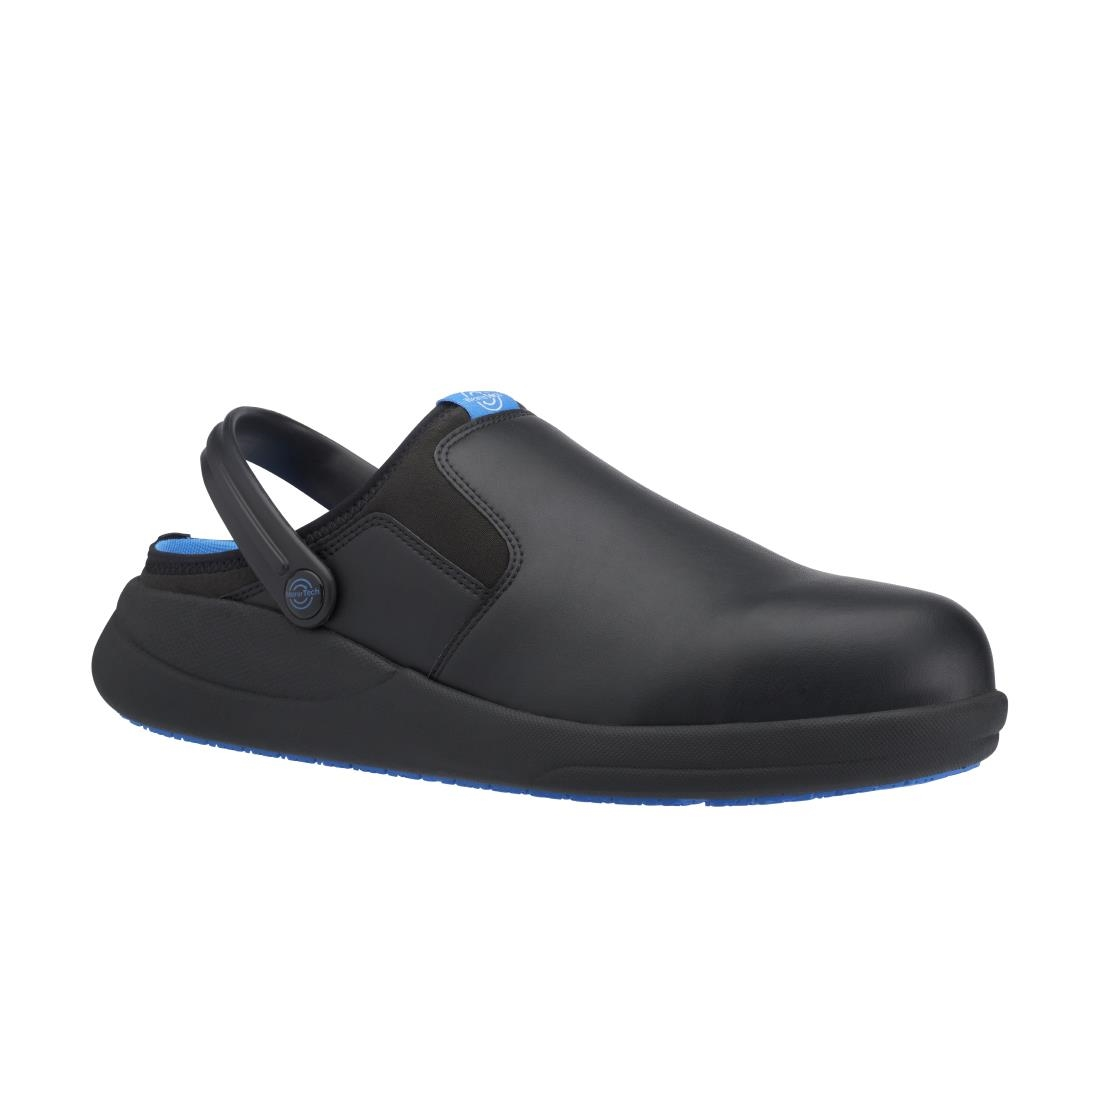 Wearertech Refresh Safety Clog Black With Firm Insole Size 37